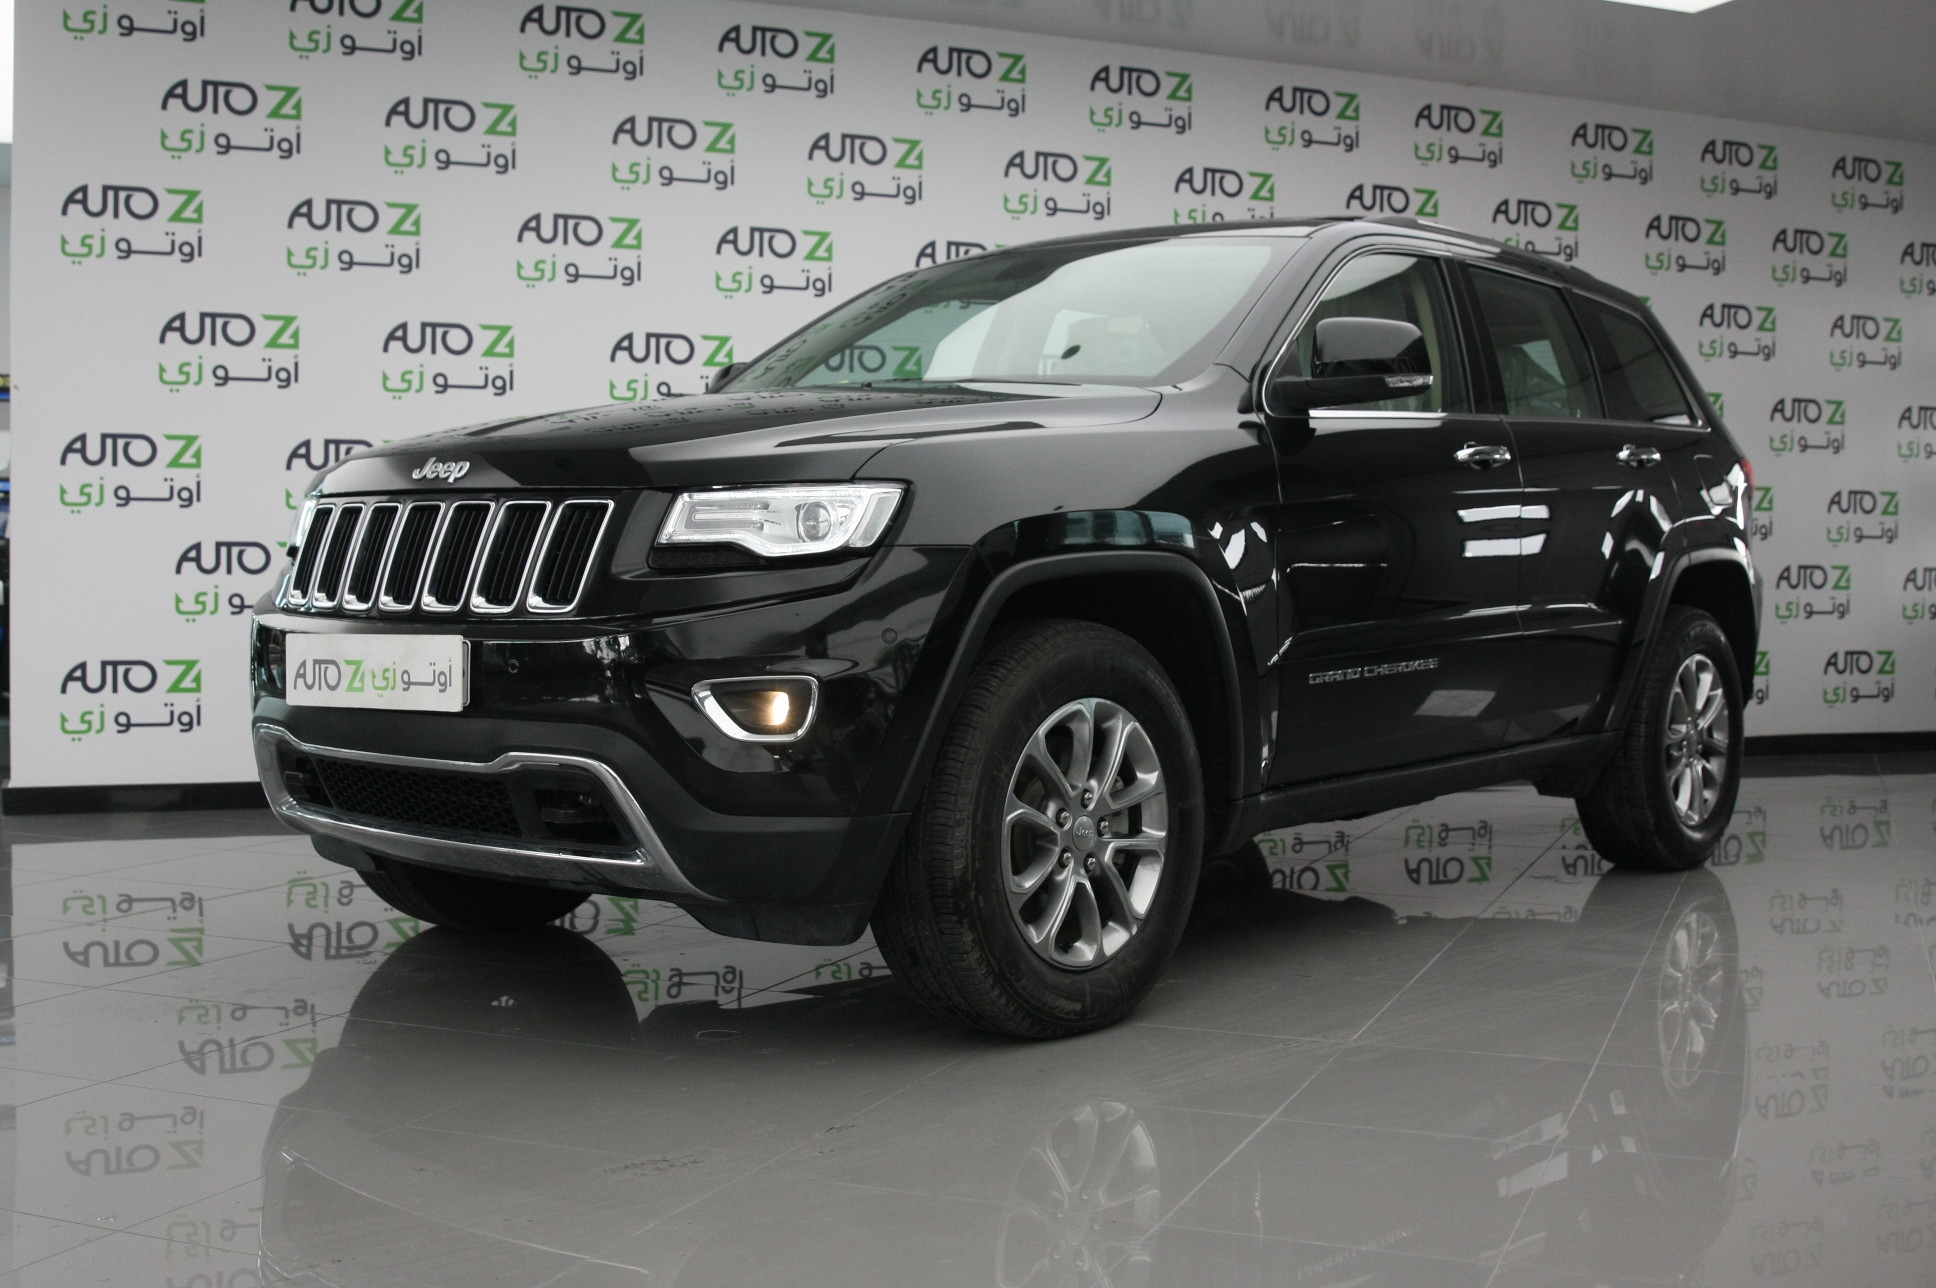 jeep grand cherokee limited autoz qatar. Black Bedroom Furniture Sets. Home Design Ideas